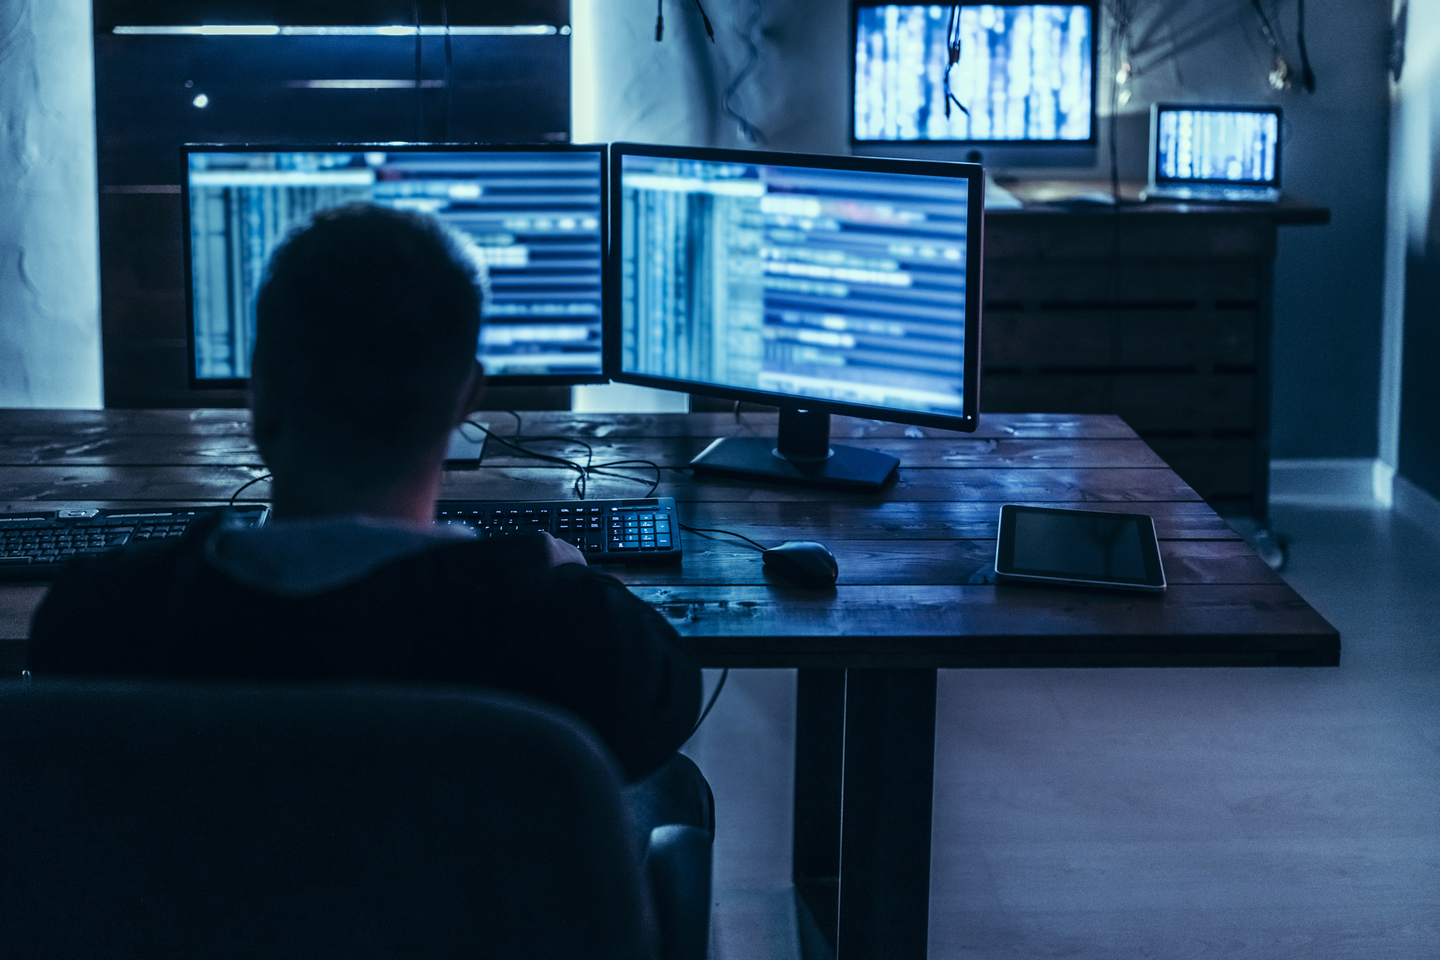 A slow-running computer system is a sign you've already been compromised, but it's never too late to stop a cyberattack from spreading.